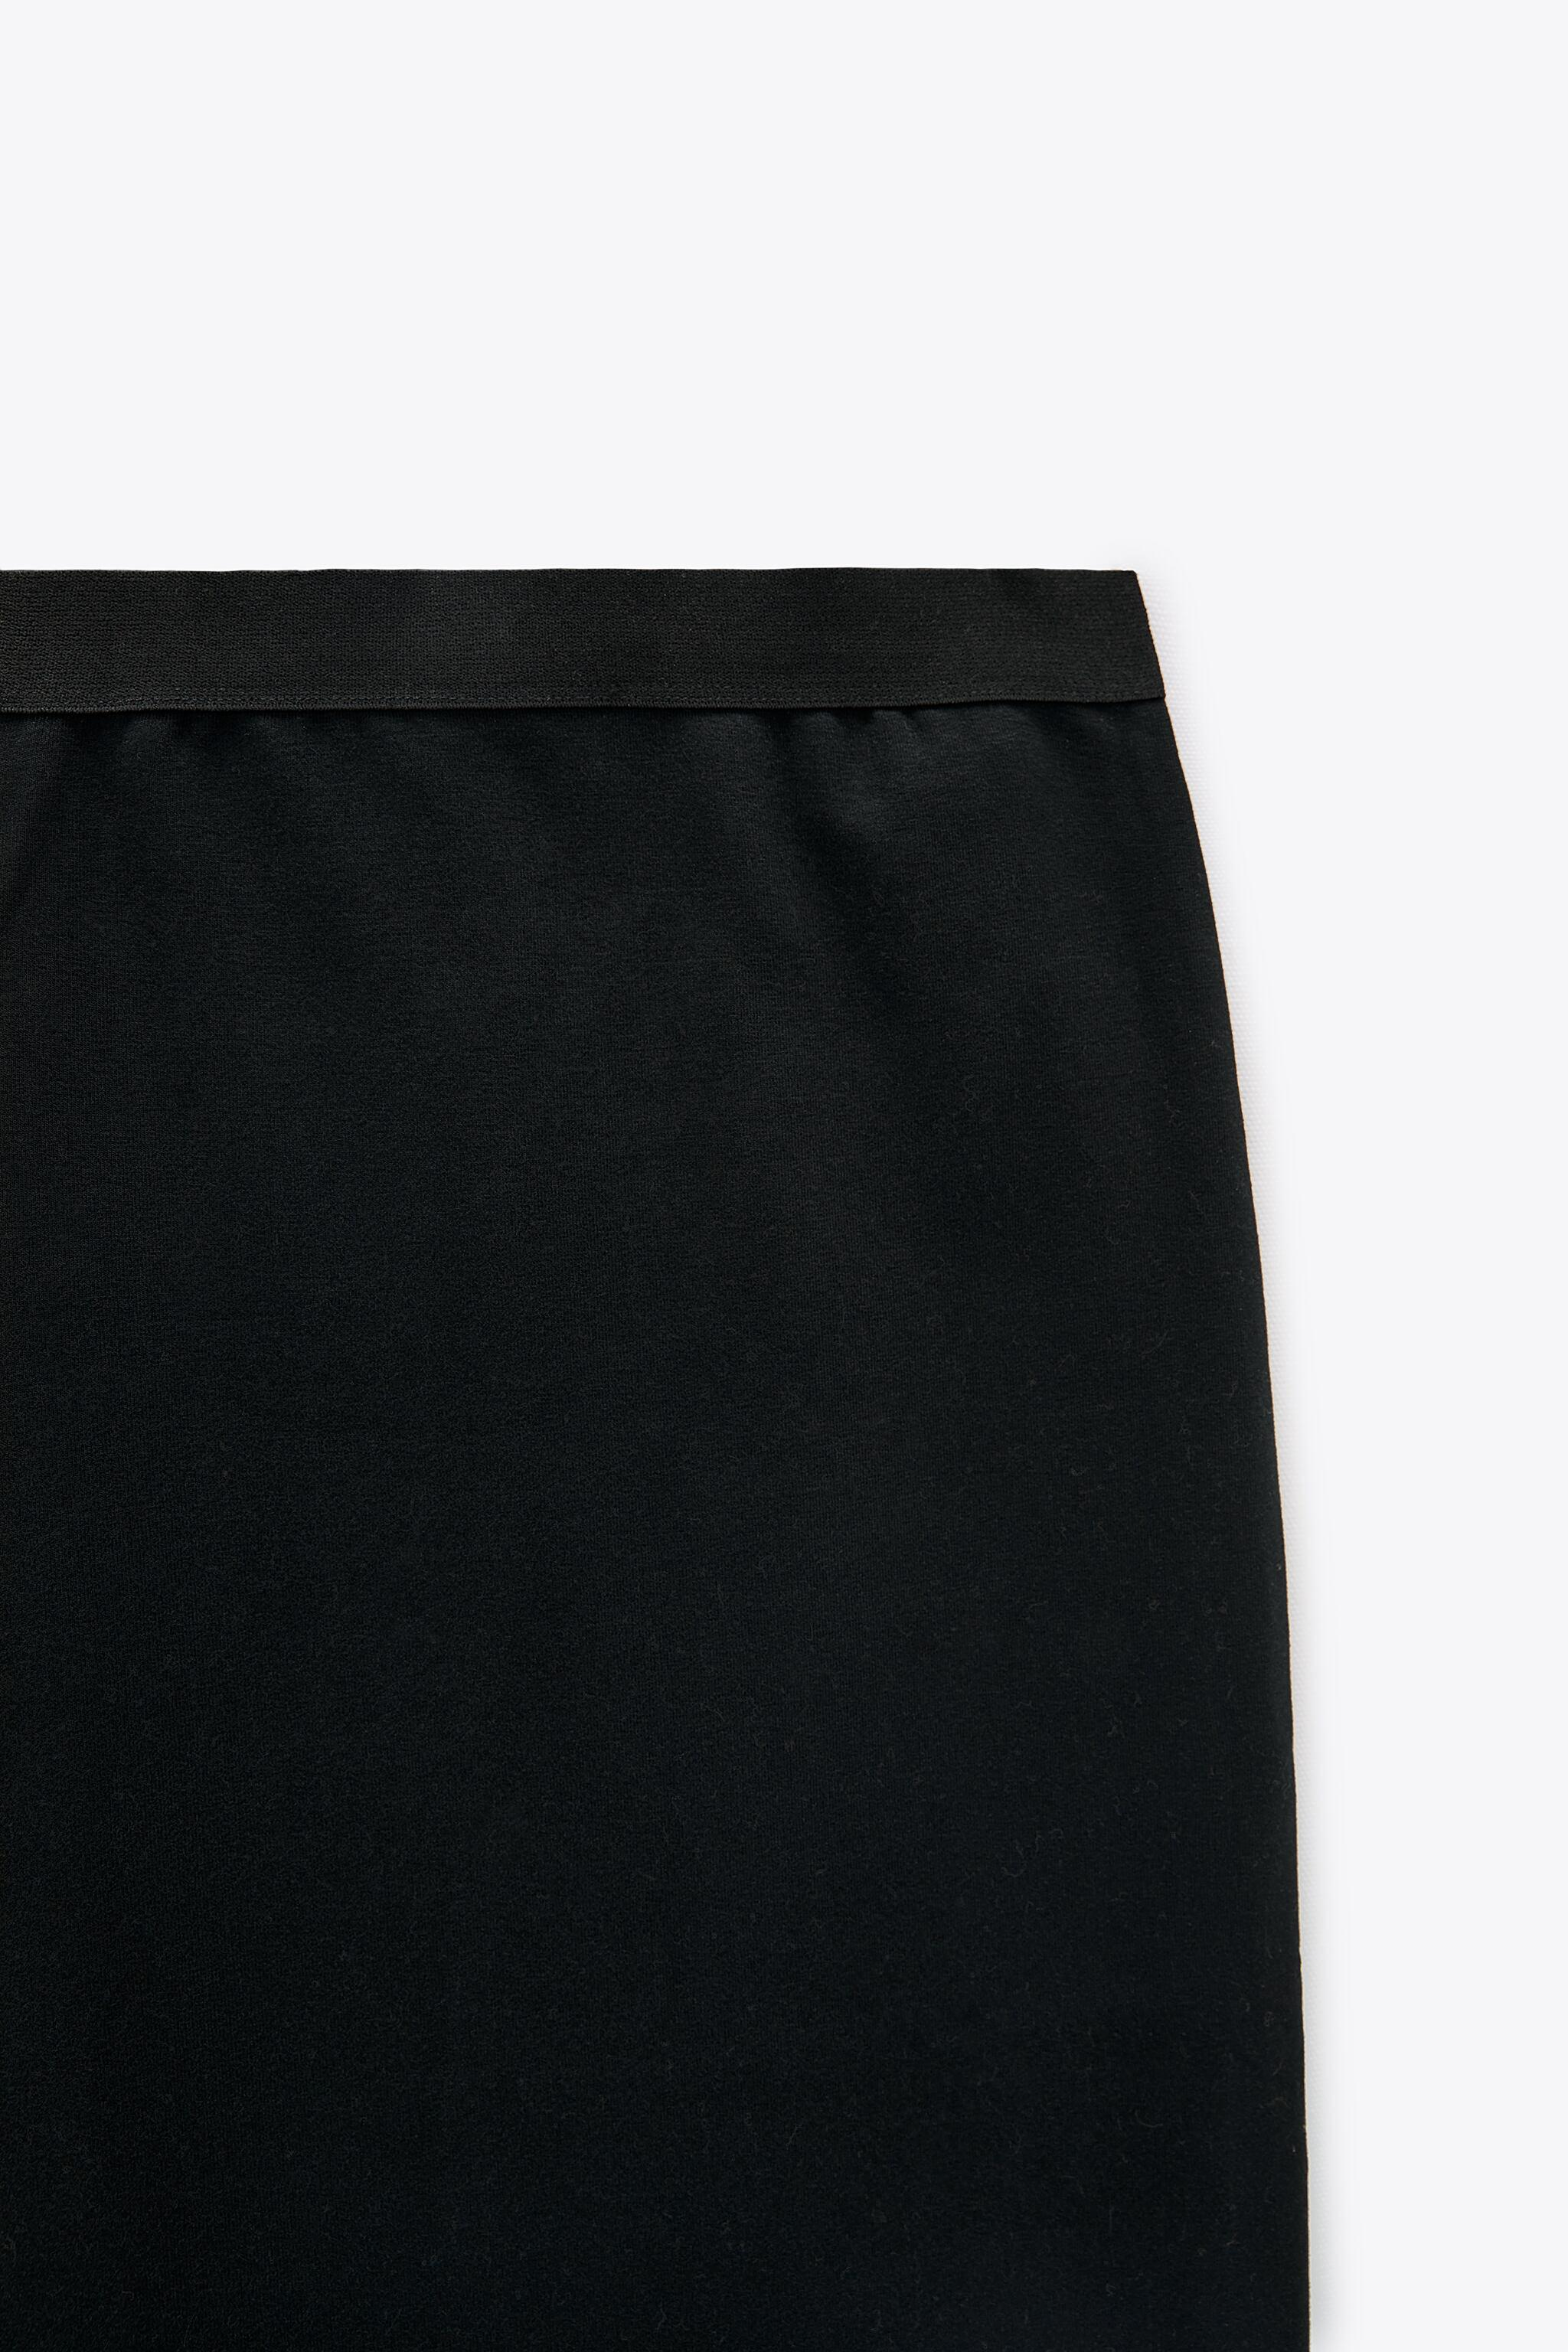 FITTED SKIRT 8